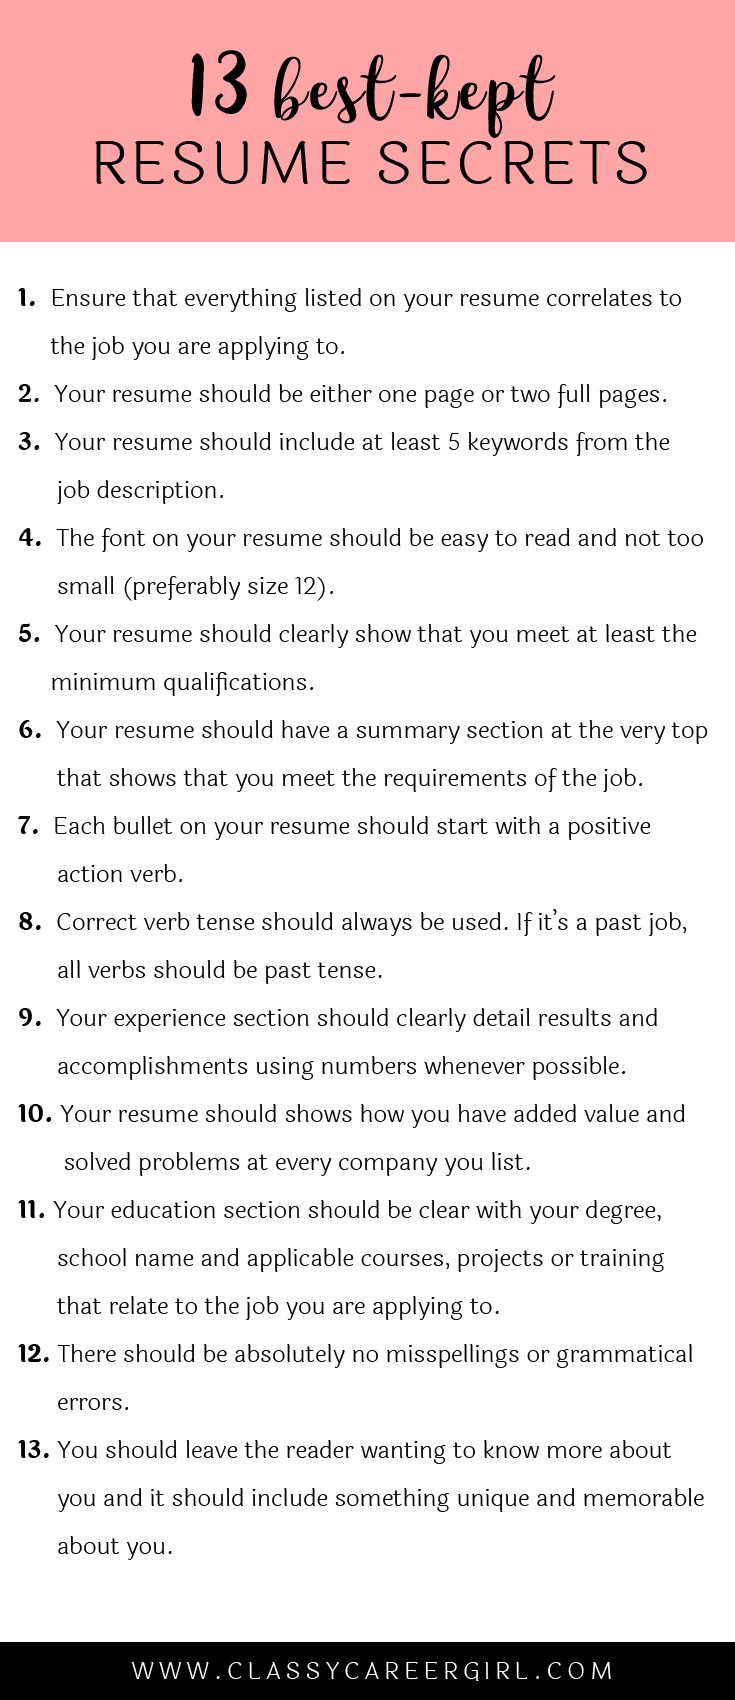 Opposenewapstandardsus  Unusual  Ideas About Resume On Pinterest  Cv Format Resume Cv And  With Foxy Some Hiring Managers Will Toss Your Resume Out If You Dont Know These  With Astounding Create A Free Resume Online Also Example Of A Great Resume In Addition Nursing Resume Sample And Elementary Teacher Resume Examples As Well As Teaching Resume Objective Additionally How To Prepare Resume From Pinterestcom With Opposenewapstandardsus  Foxy  Ideas About Resume On Pinterest  Cv Format Resume Cv And  With Astounding Some Hiring Managers Will Toss Your Resume Out If You Dont Know These  And Unusual Create A Free Resume Online Also Example Of A Great Resume In Addition Nursing Resume Sample From Pinterestcom